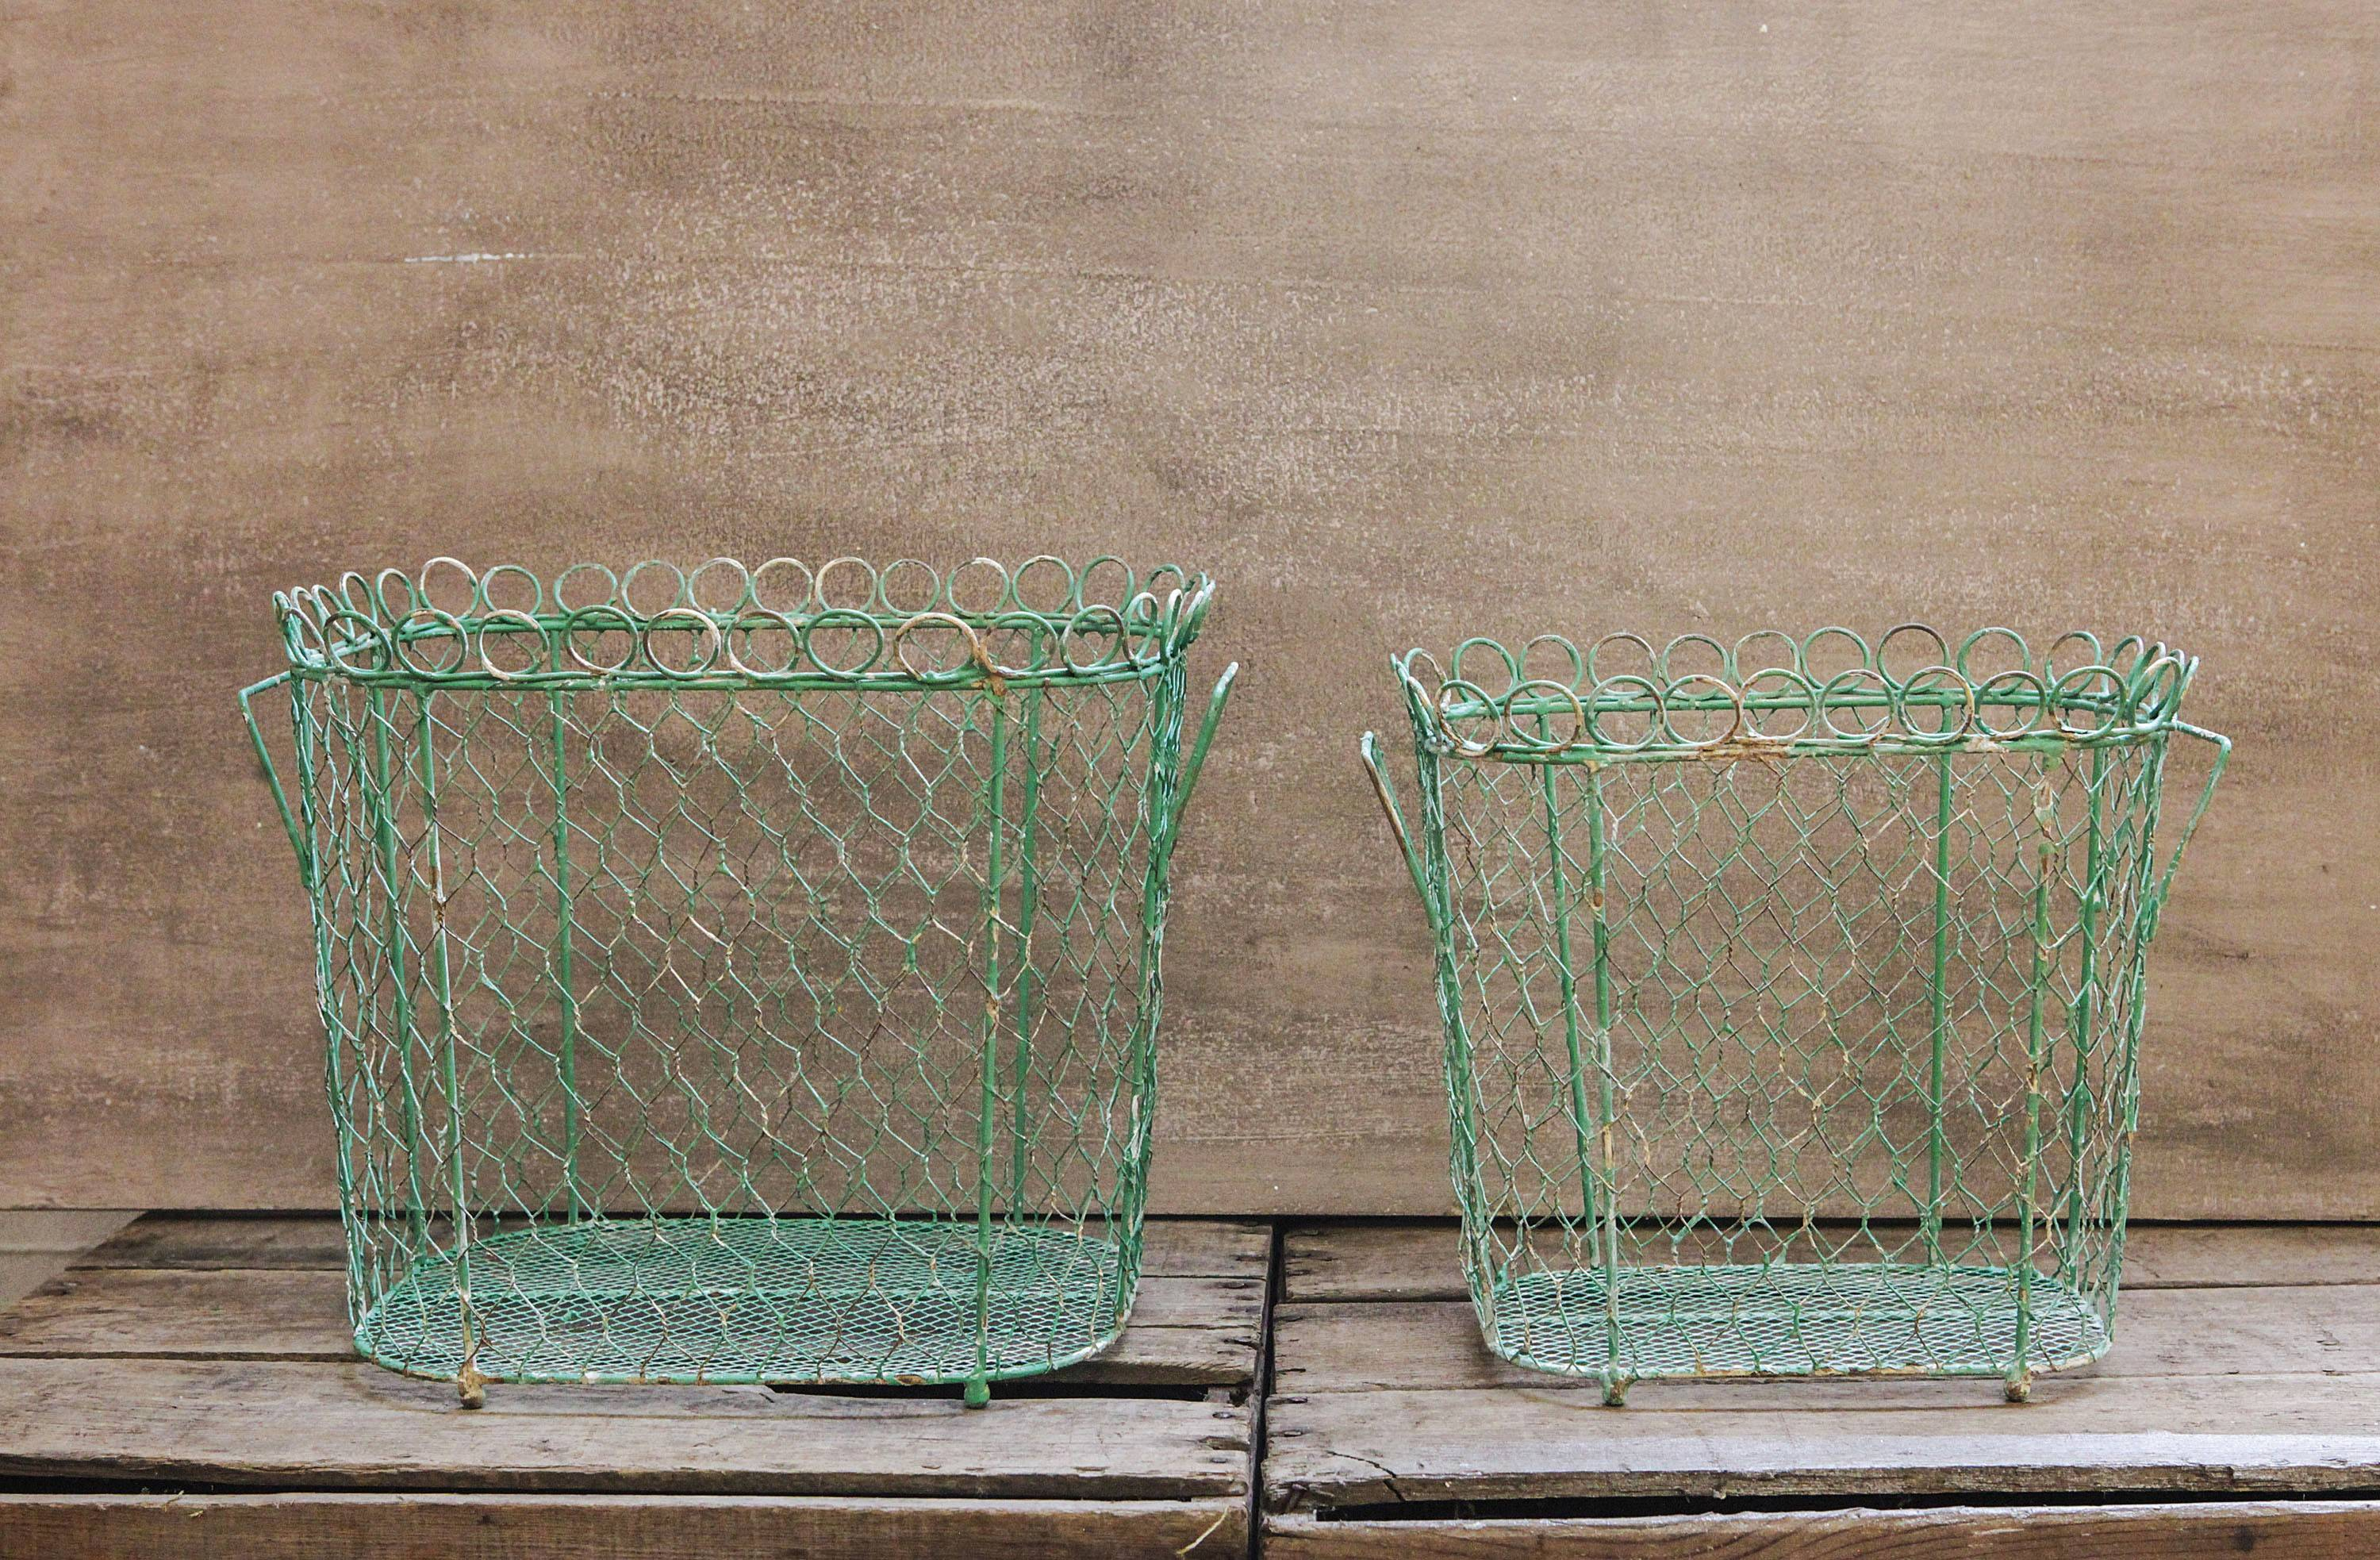 Turquoise wire baskets, like these from Farmhouse Wares, have a French garden vibe that's on trend this spring and summer.  Use them for storing everything from pet gear to laundry supplies to magazines and books.